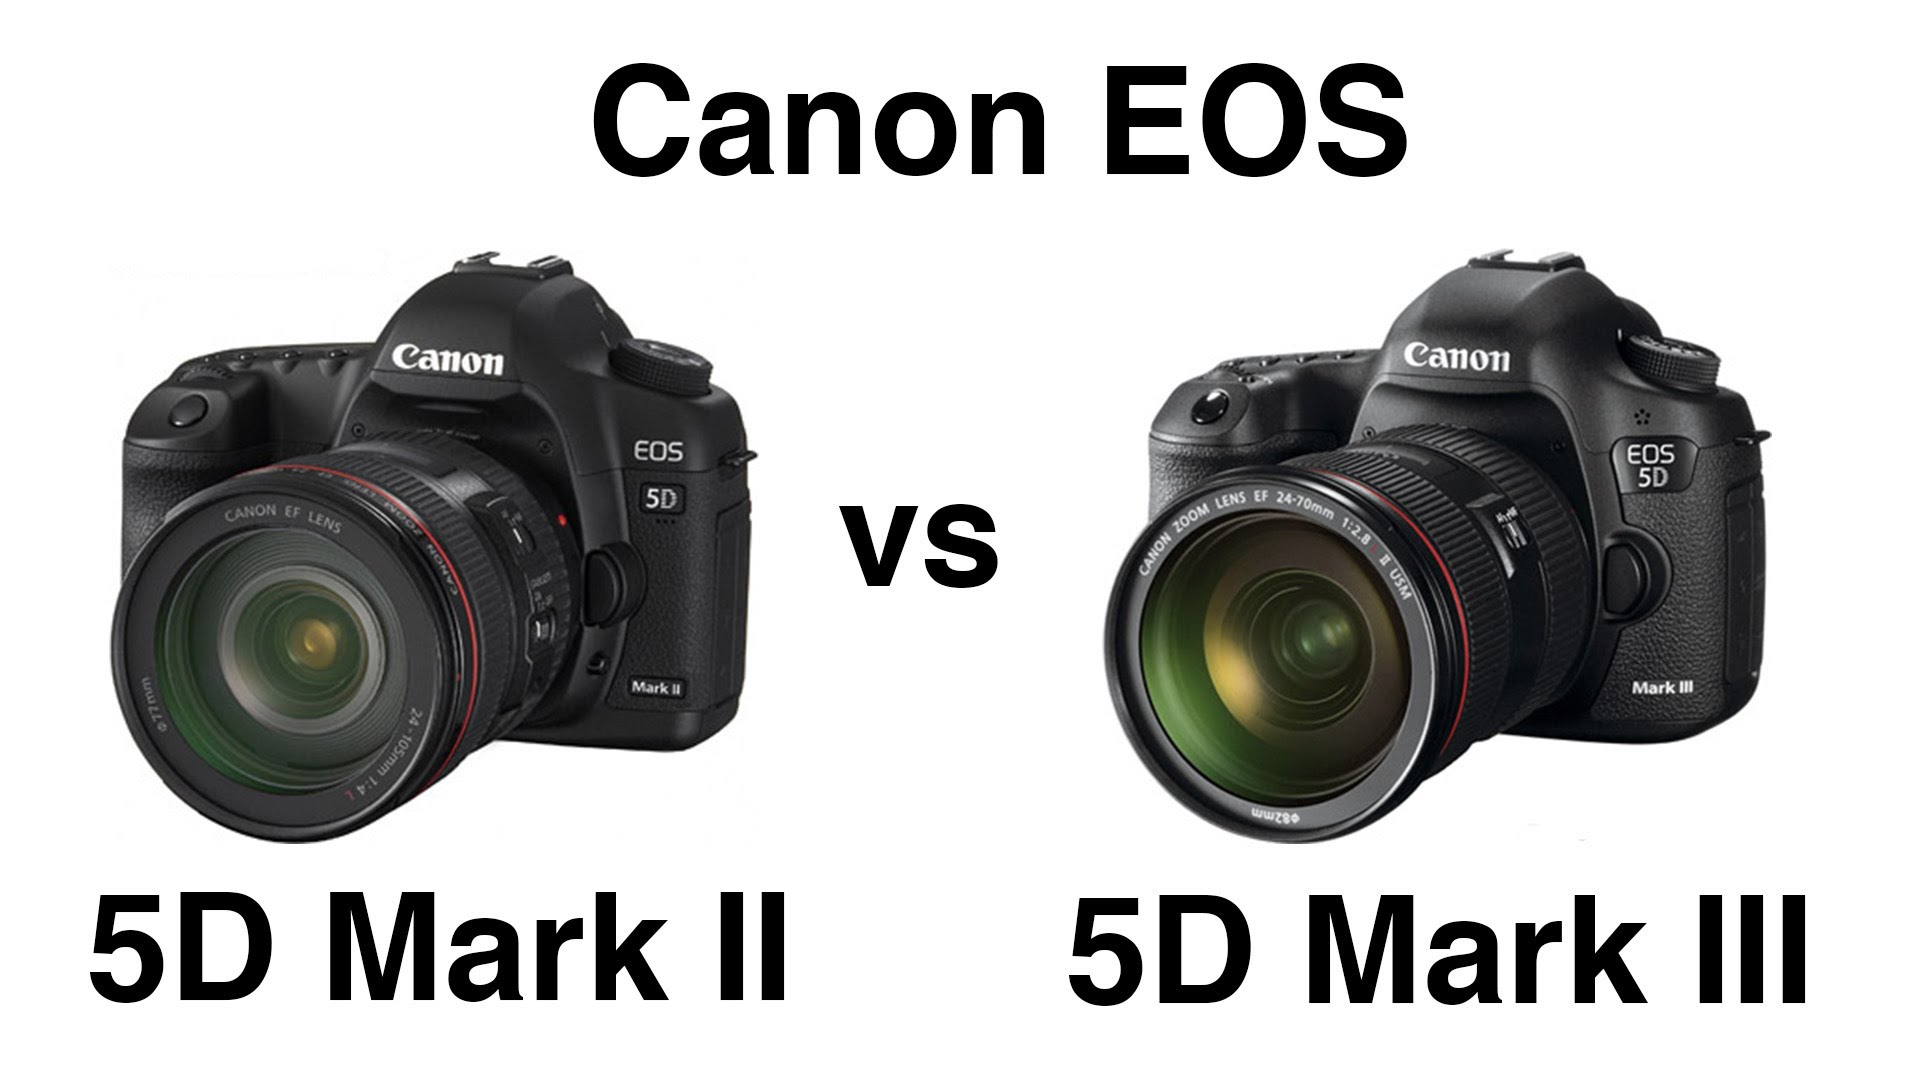 canon 5d mark iii vs 5d mark ii comparison. Black Bedroom Furniture Sets. Home Design Ideas